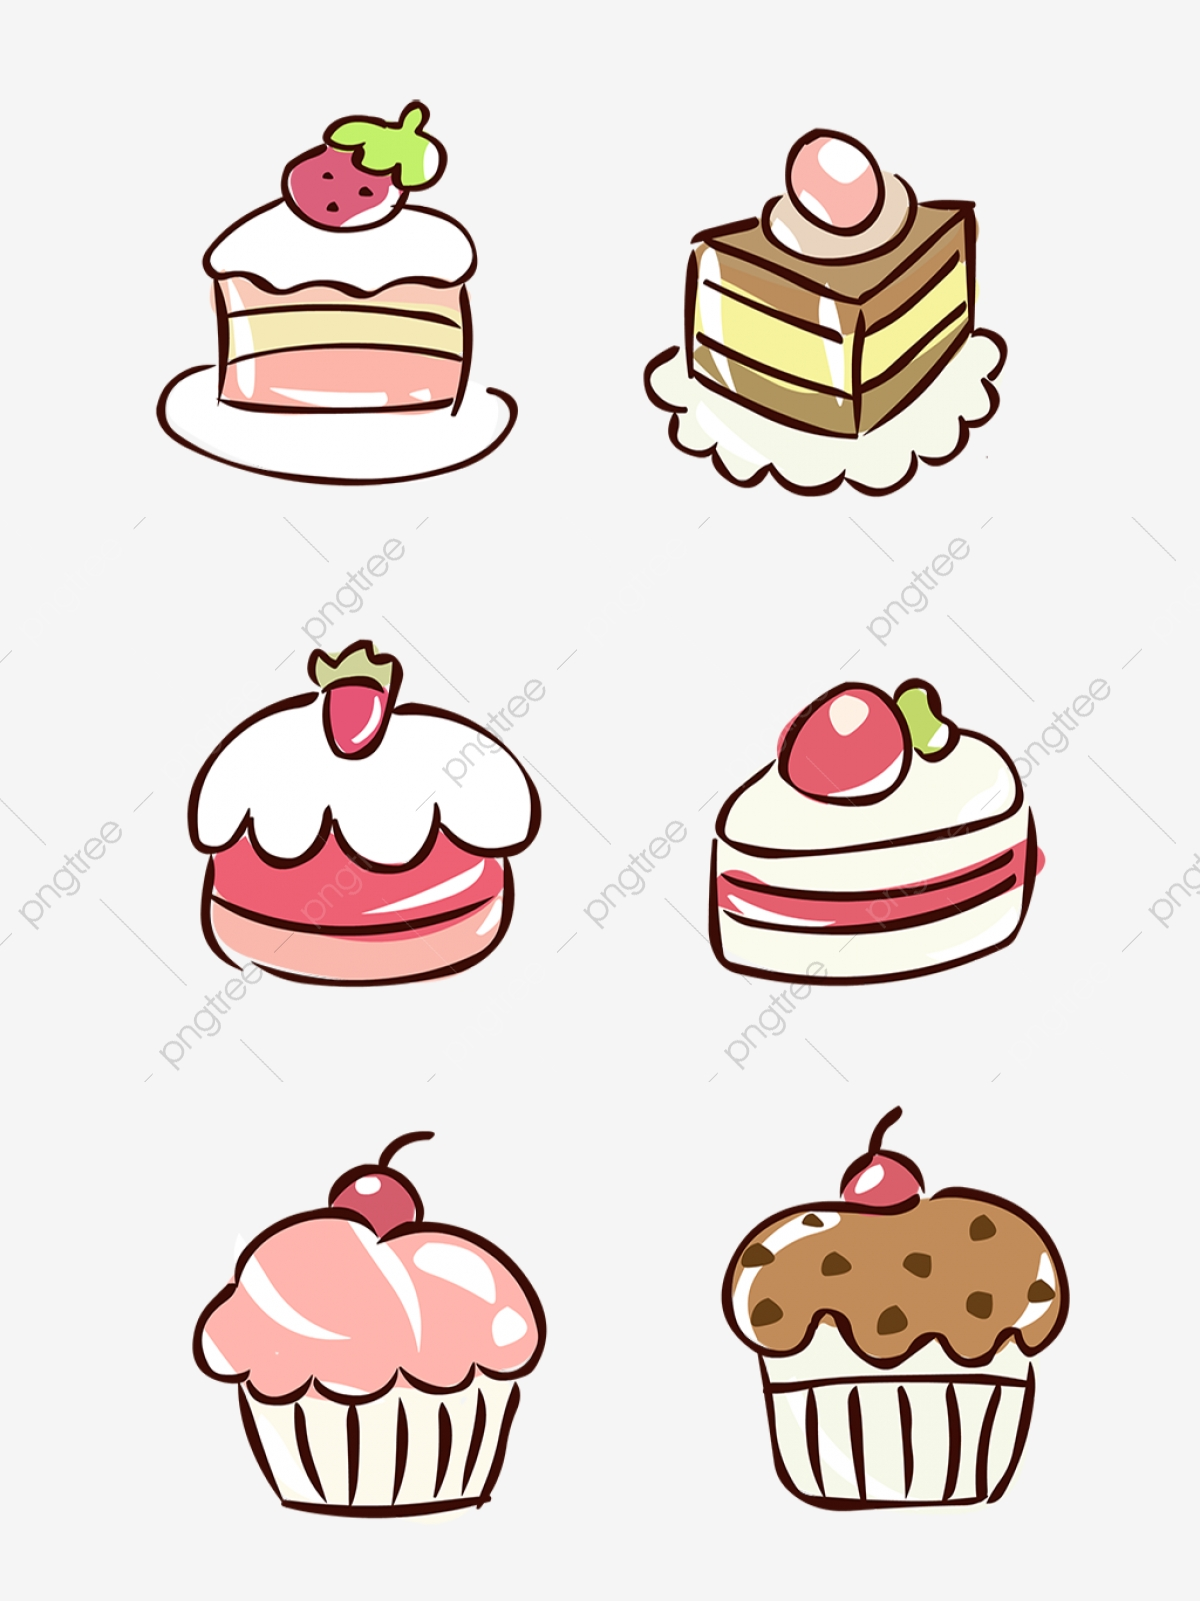 Free Desserts Clip Art with No Background - ClipartKey